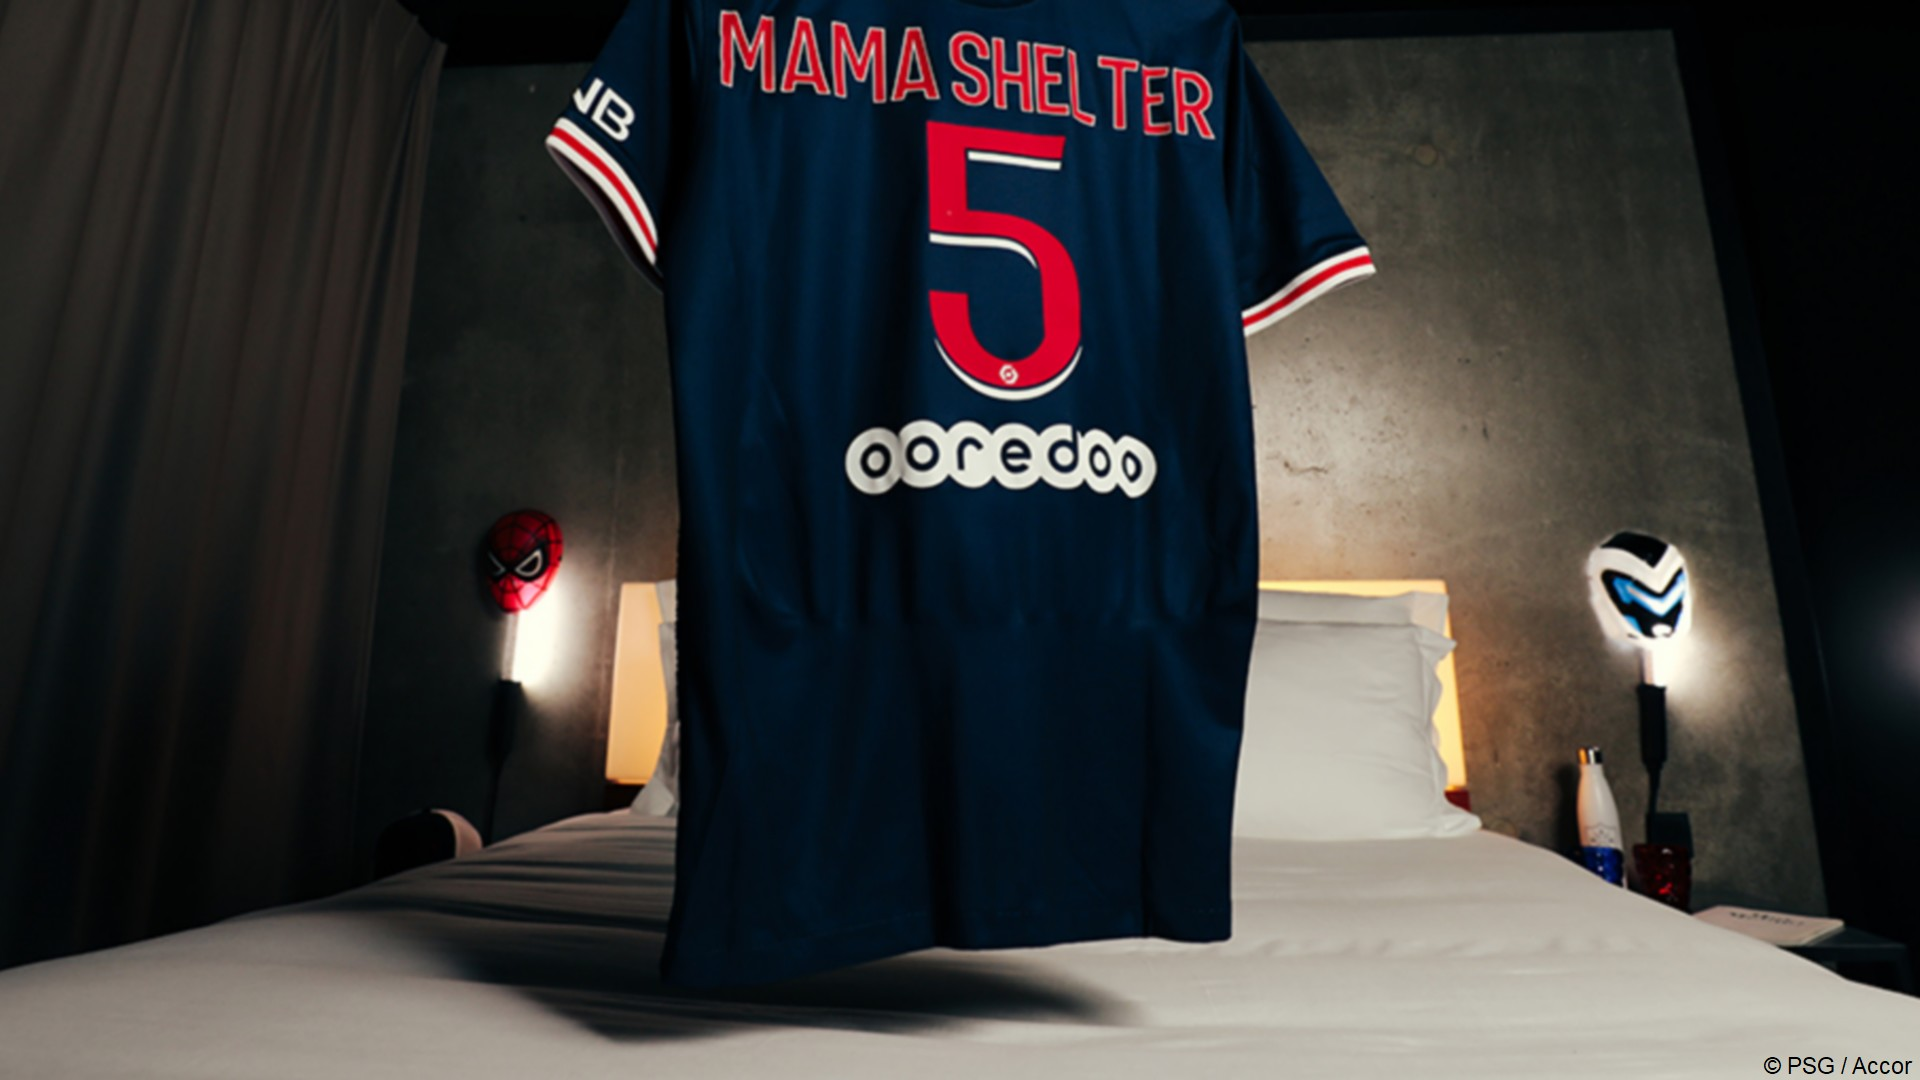 Accor Mama Shelter x PSG (football) 2021